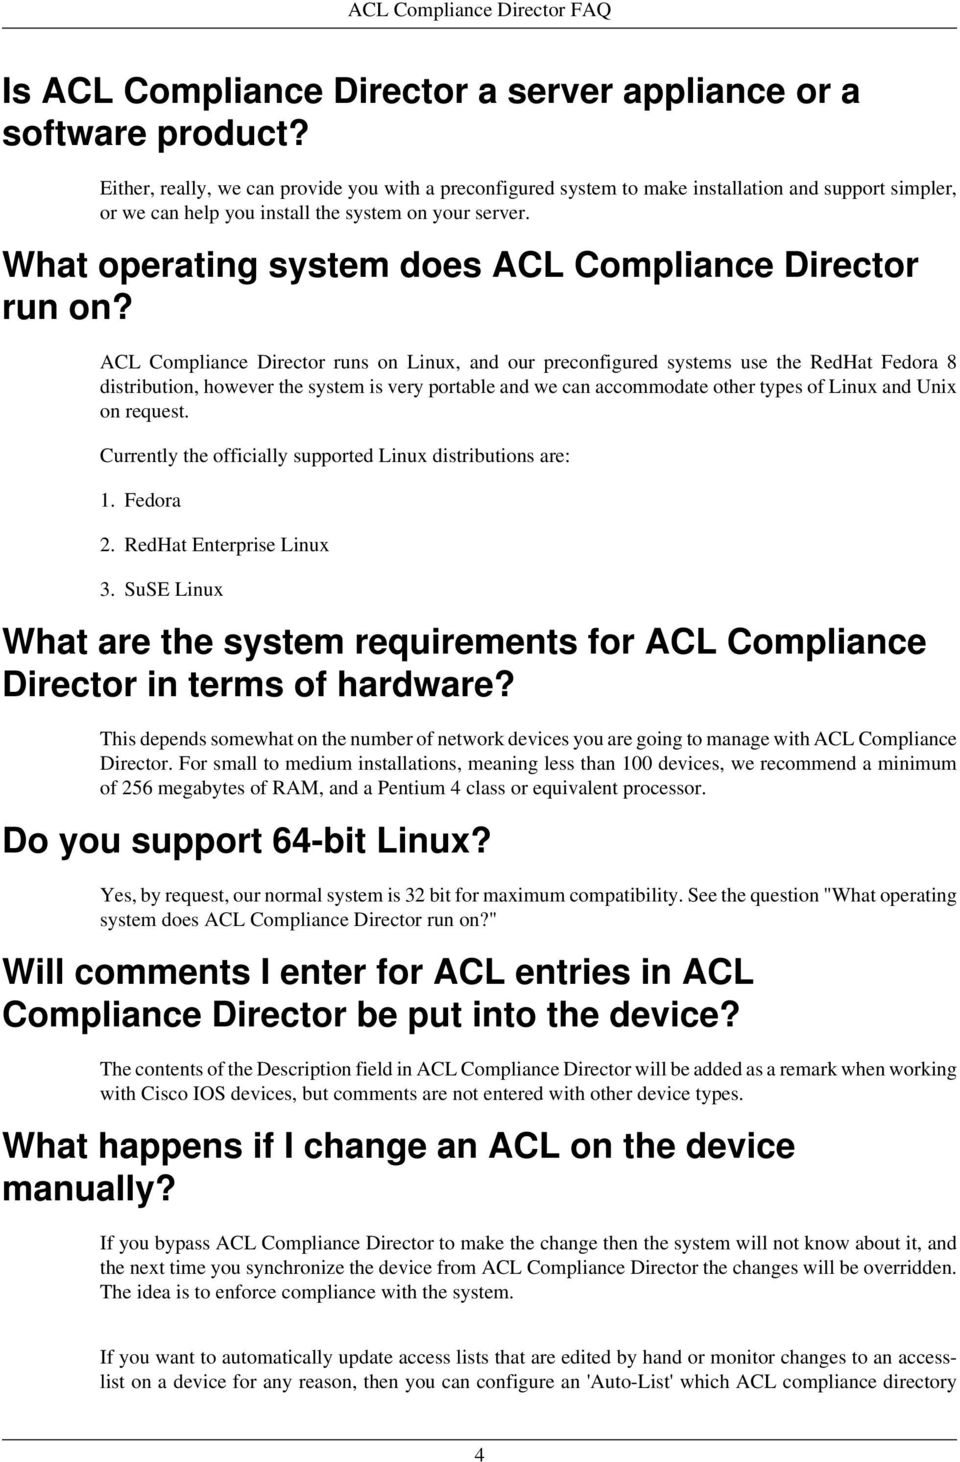 What operating system does ACL Compliance Director run on?